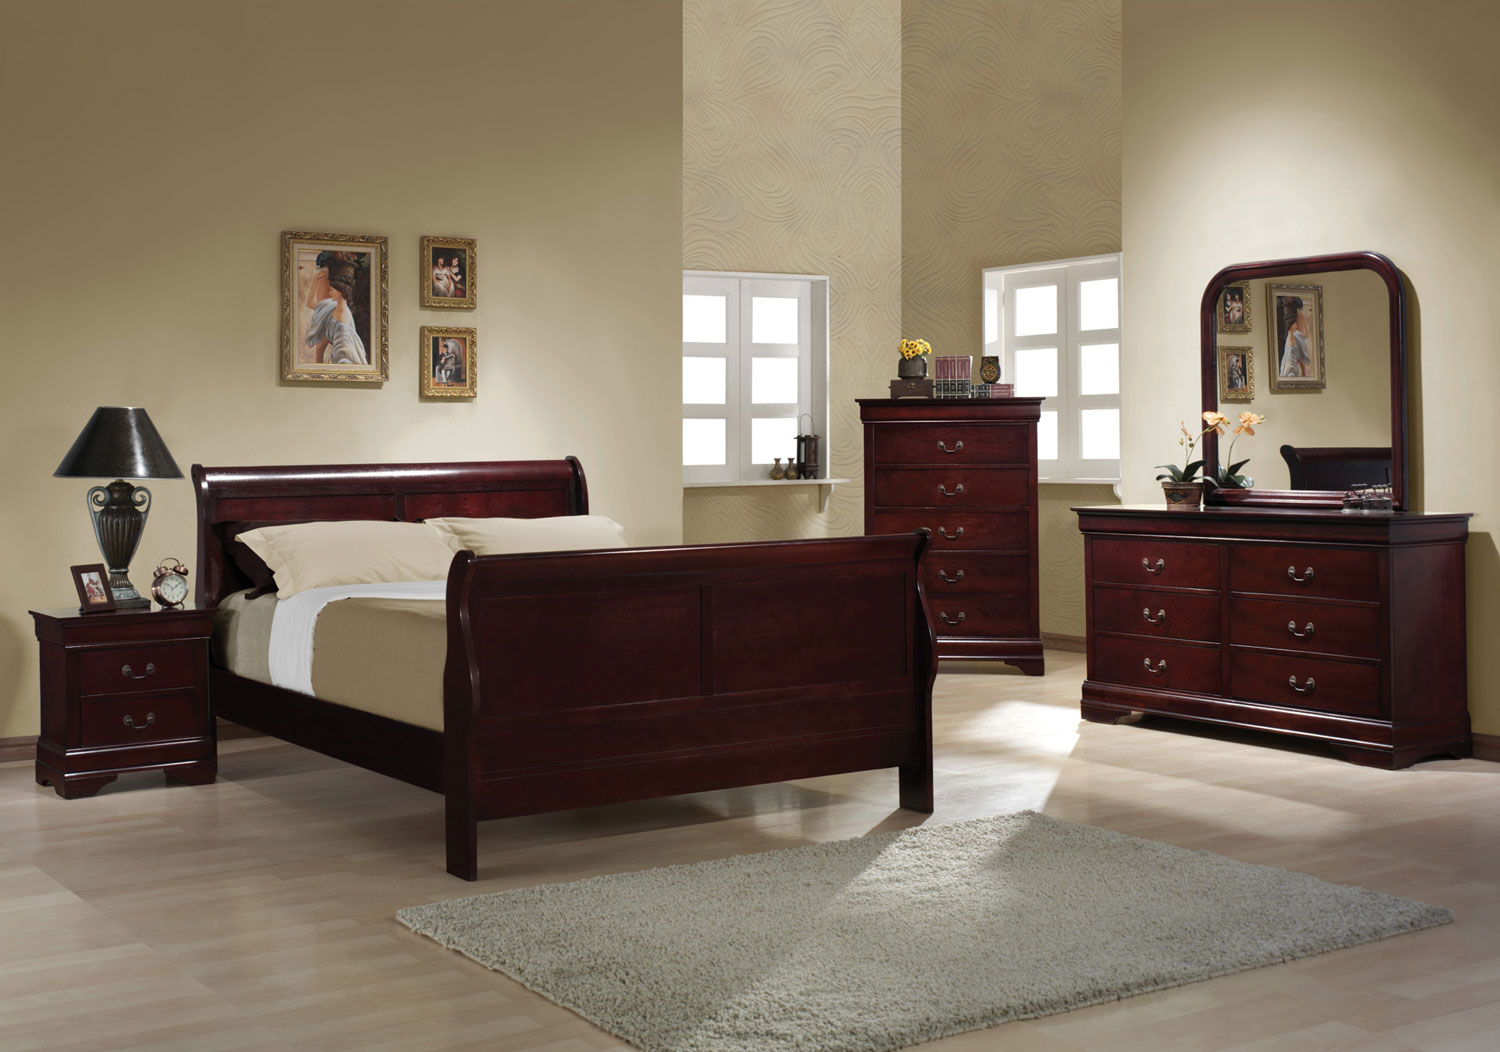 Cherry sleigh bedroom louis philippe 203971 queen bed king night stand dresser mirror